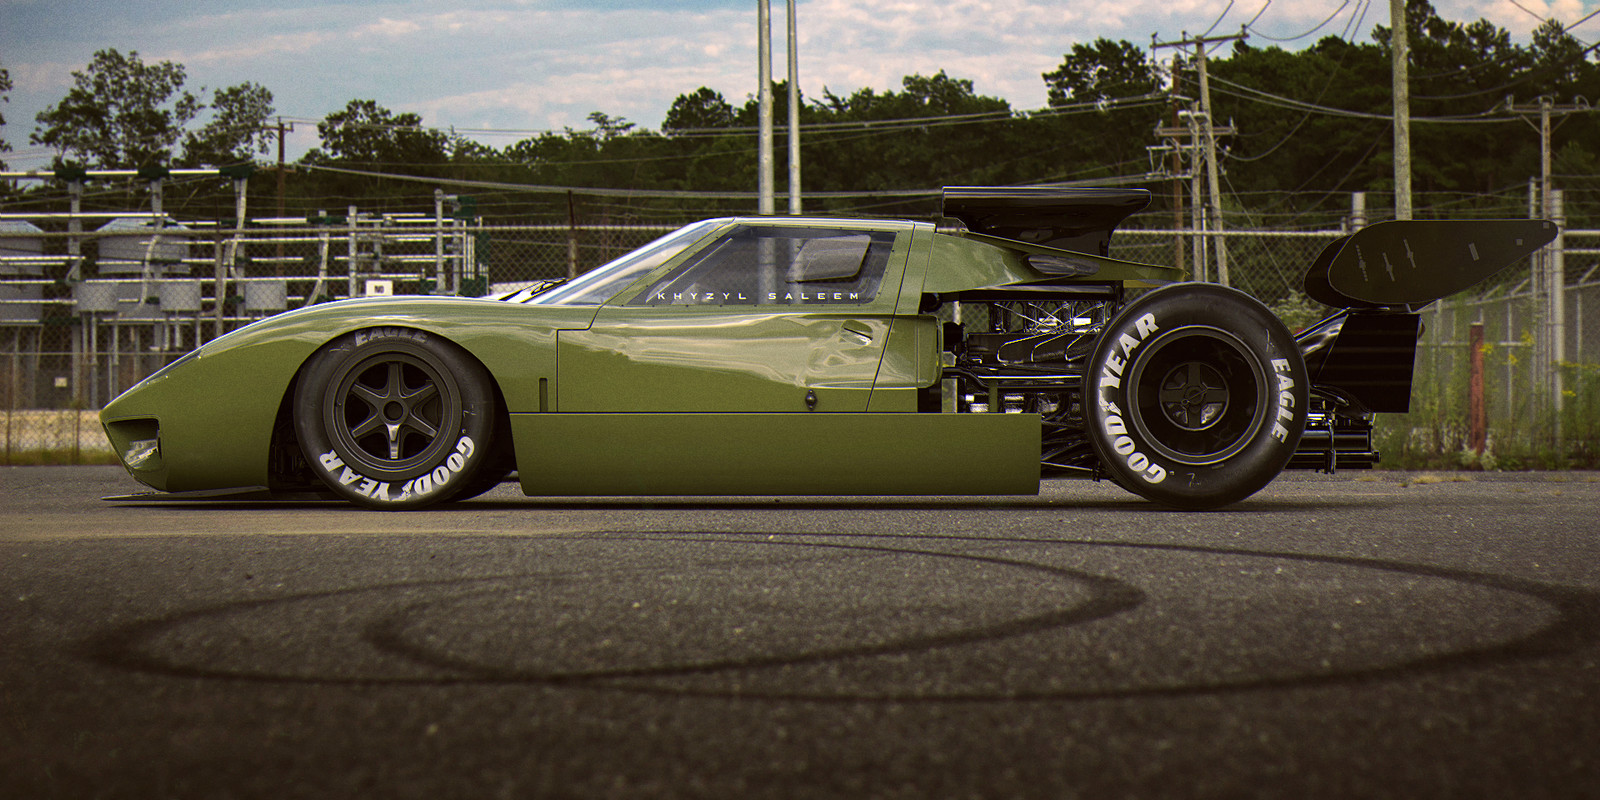 Ford GT472-D